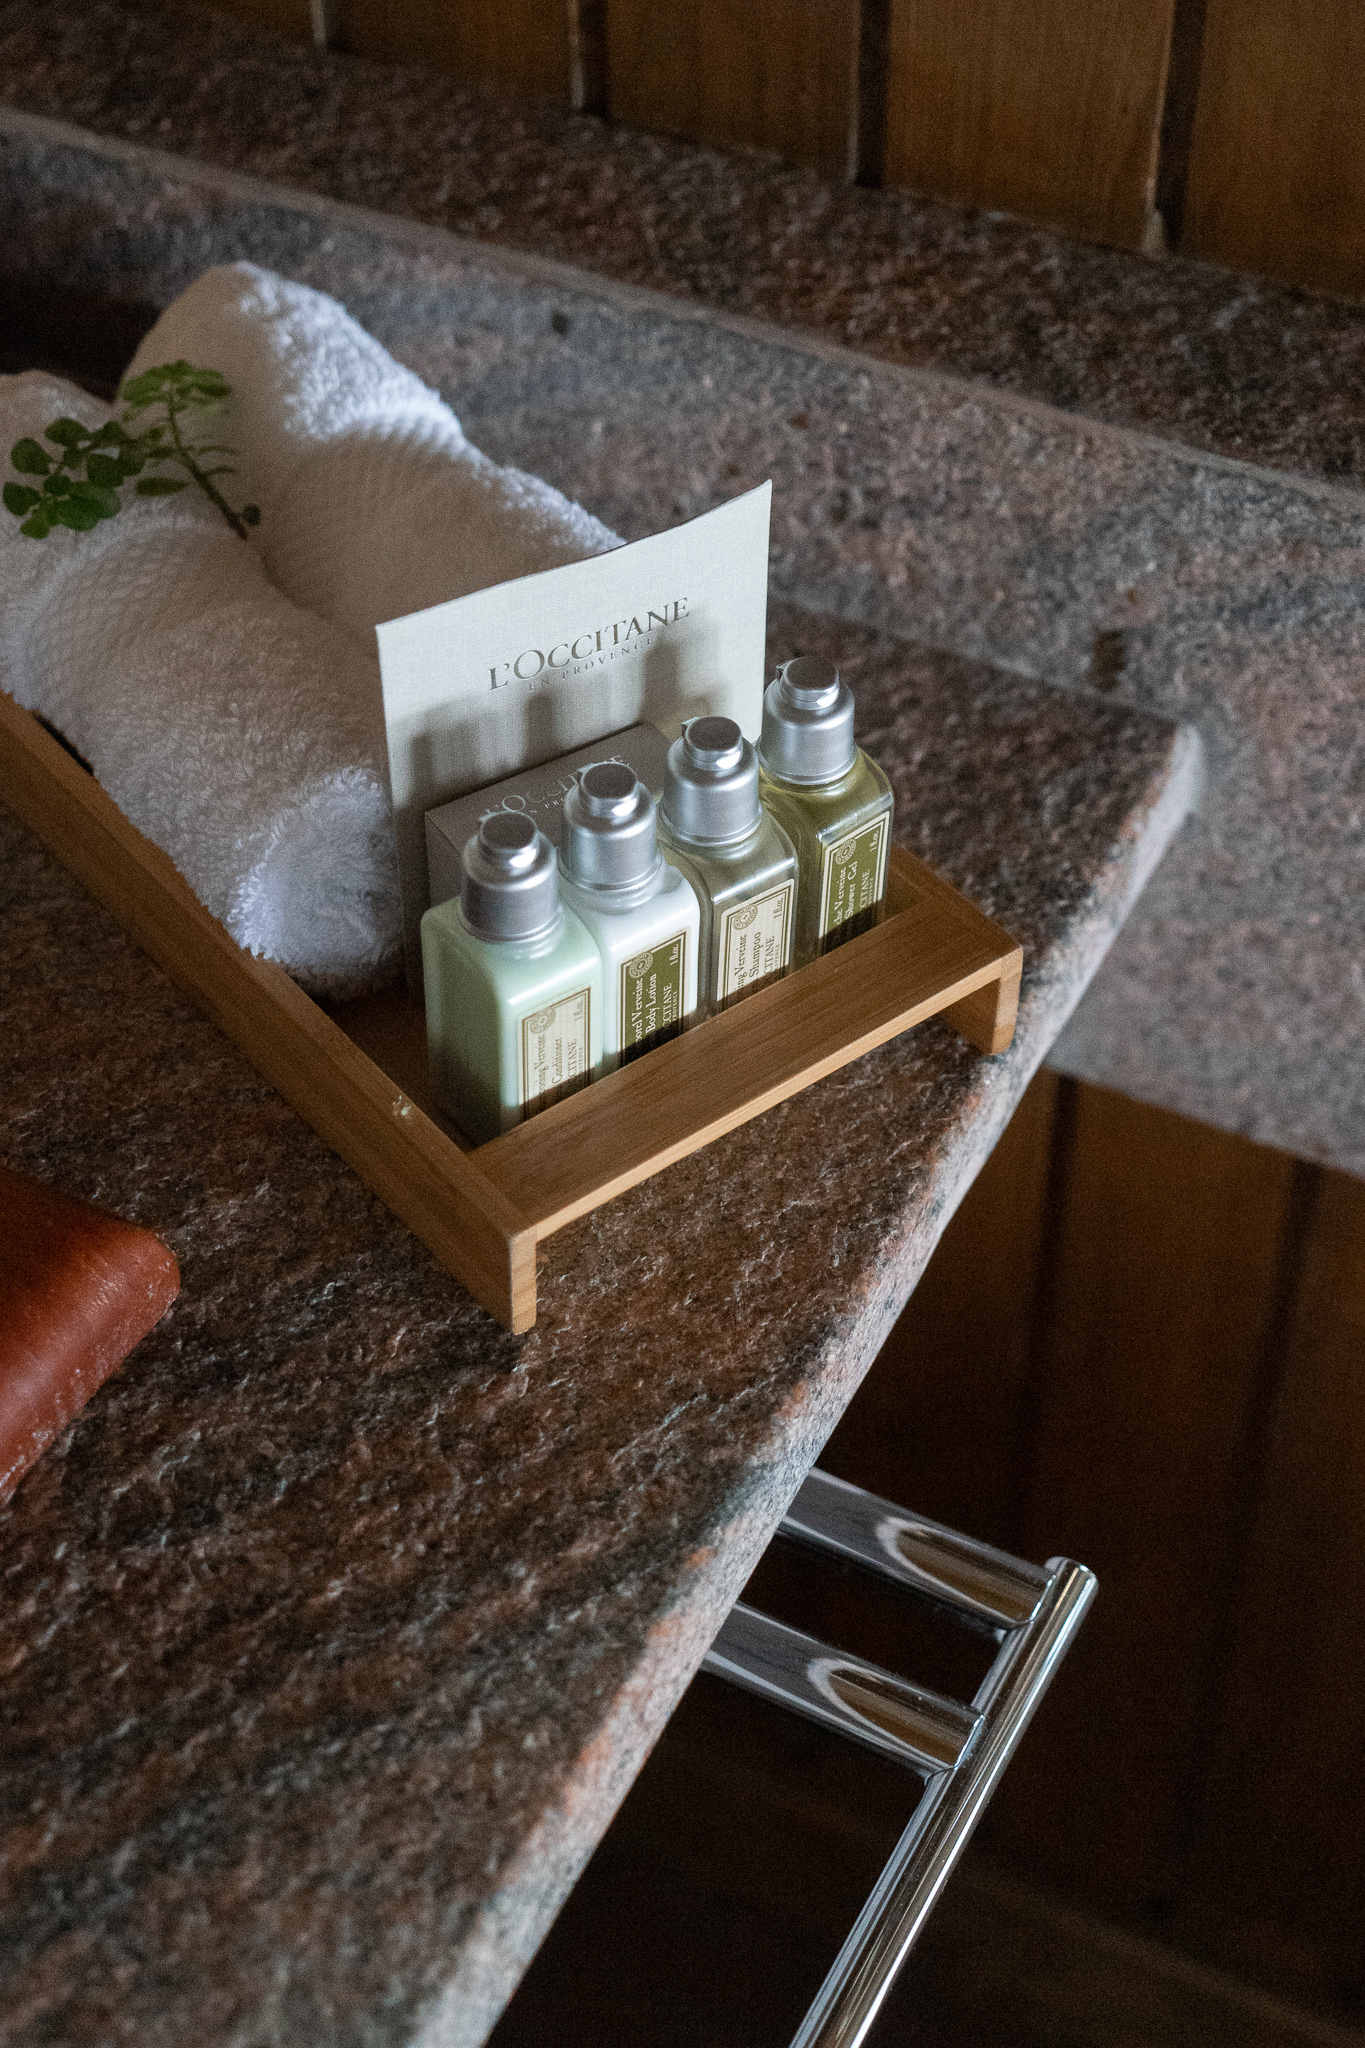 The rooms are stocked with amenities from L'Occitane.